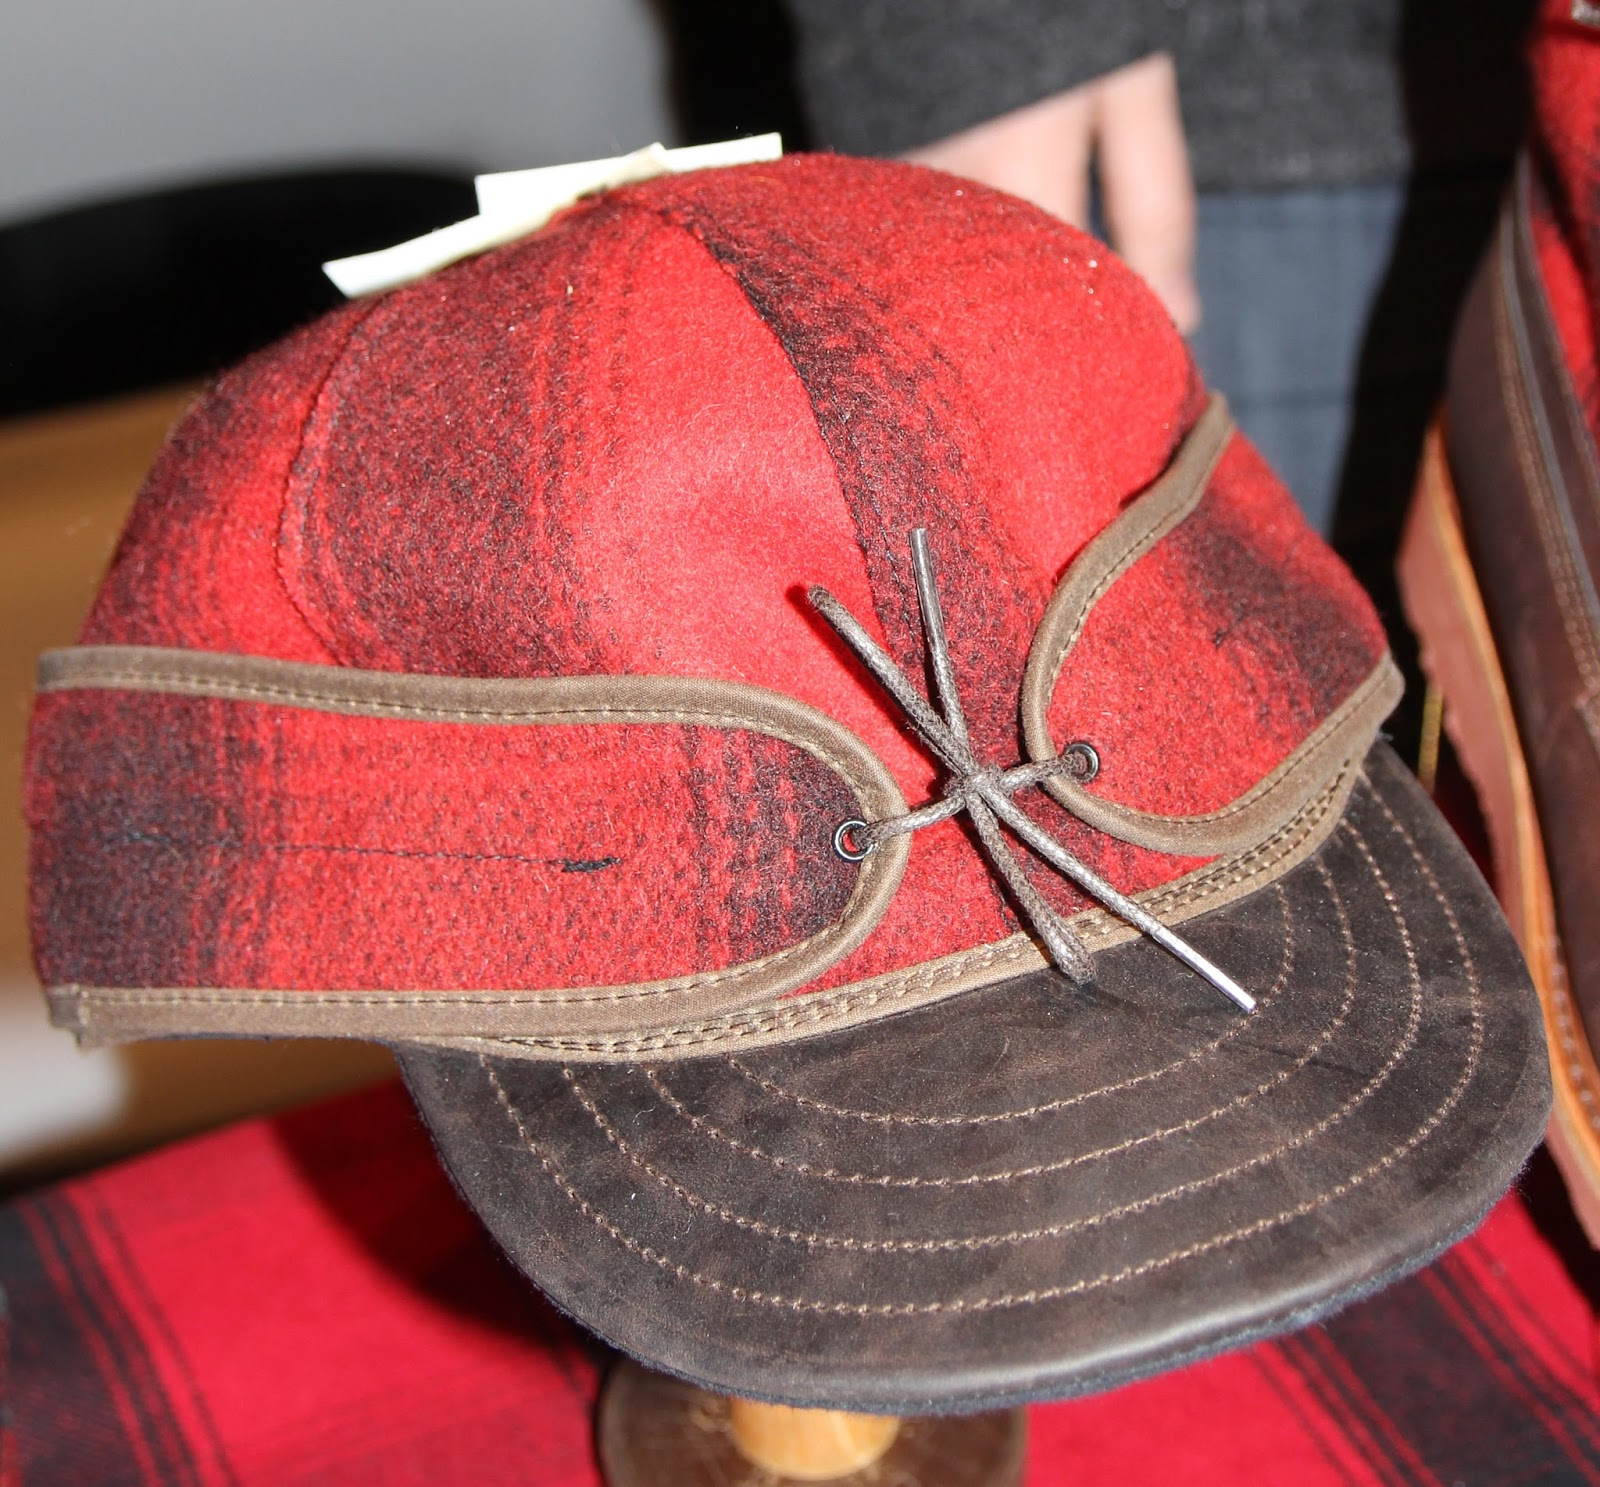 Stormy Kromer Mercantile collabs with Wolverine  Peninsula Cap (bridging  the Upper and lower Michigan Peninsulas---fyi) the burnished Horween  leather lid on ... 0cb46b24c4a8